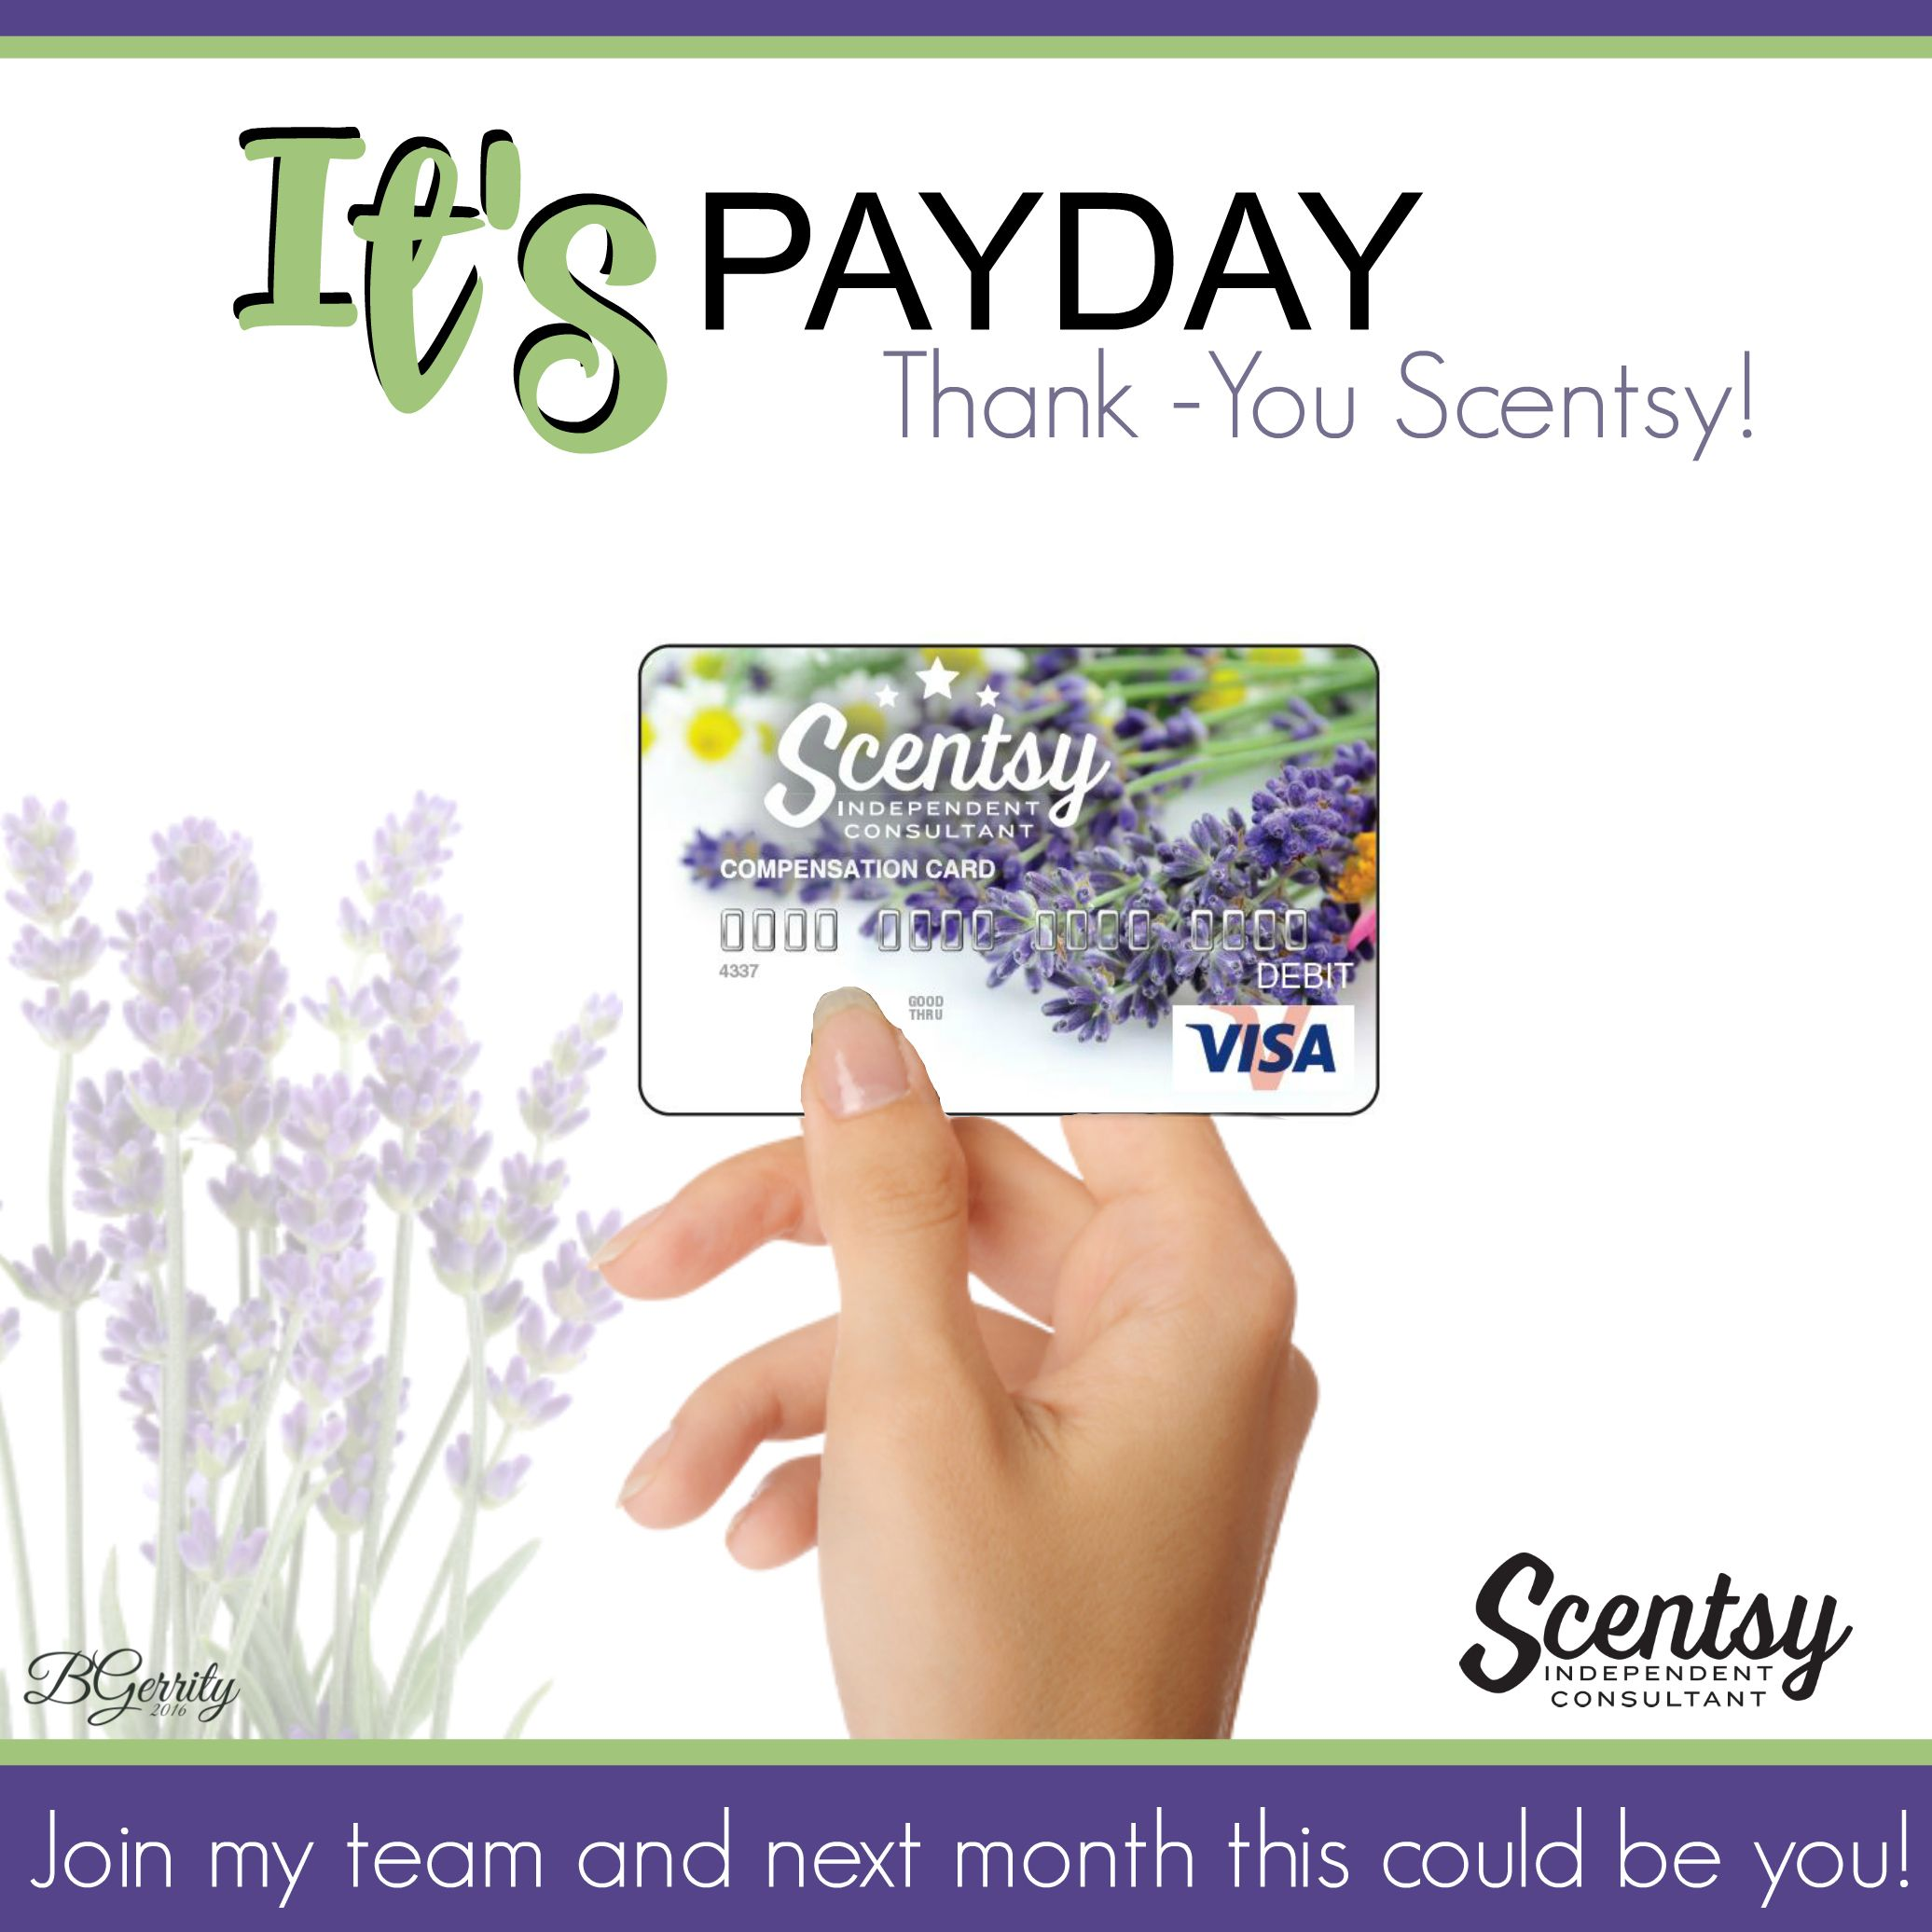 SCENTSY - PAY DAY FLYER CREATED BY BRITTANY GERRITY www ...